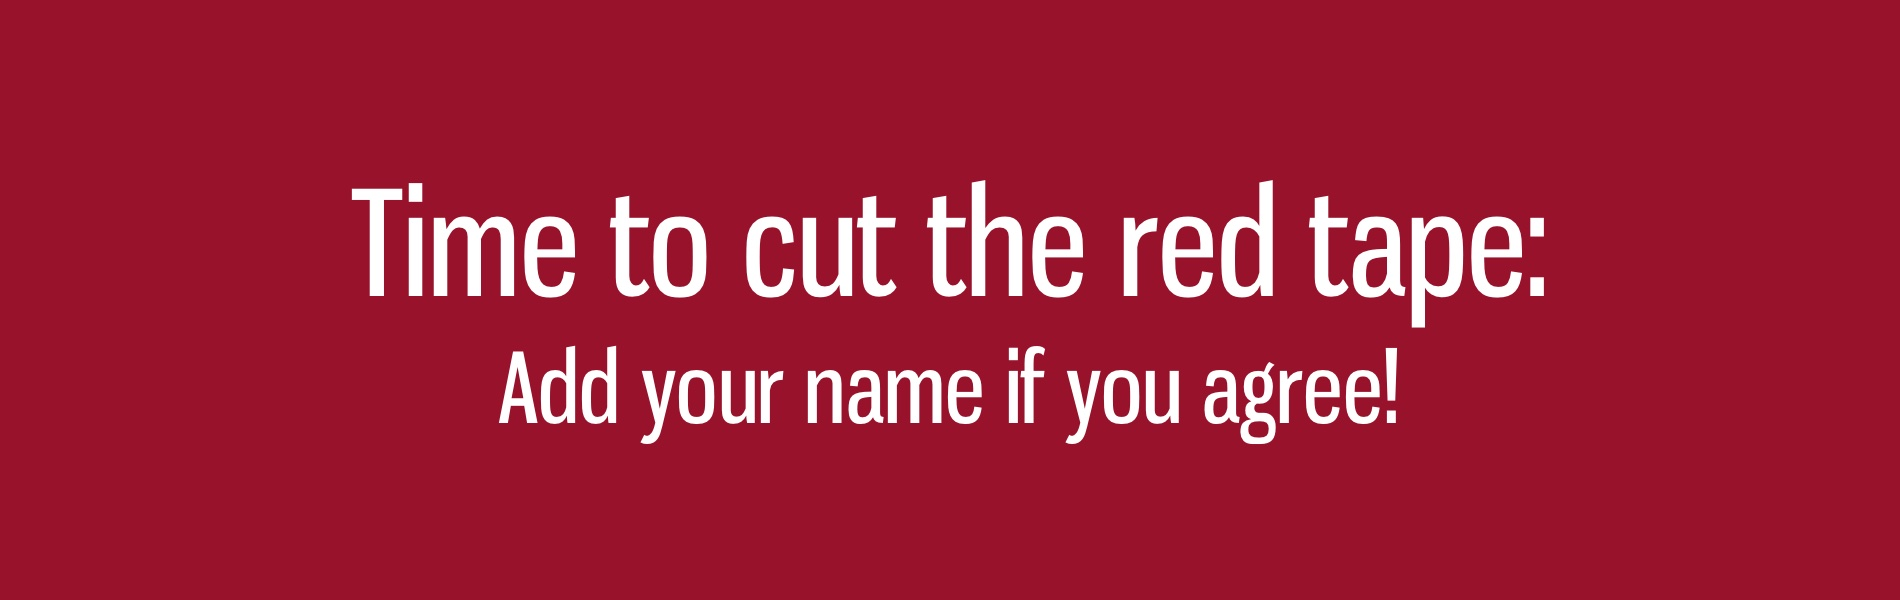 Cut The Red Tape: Add Your Name